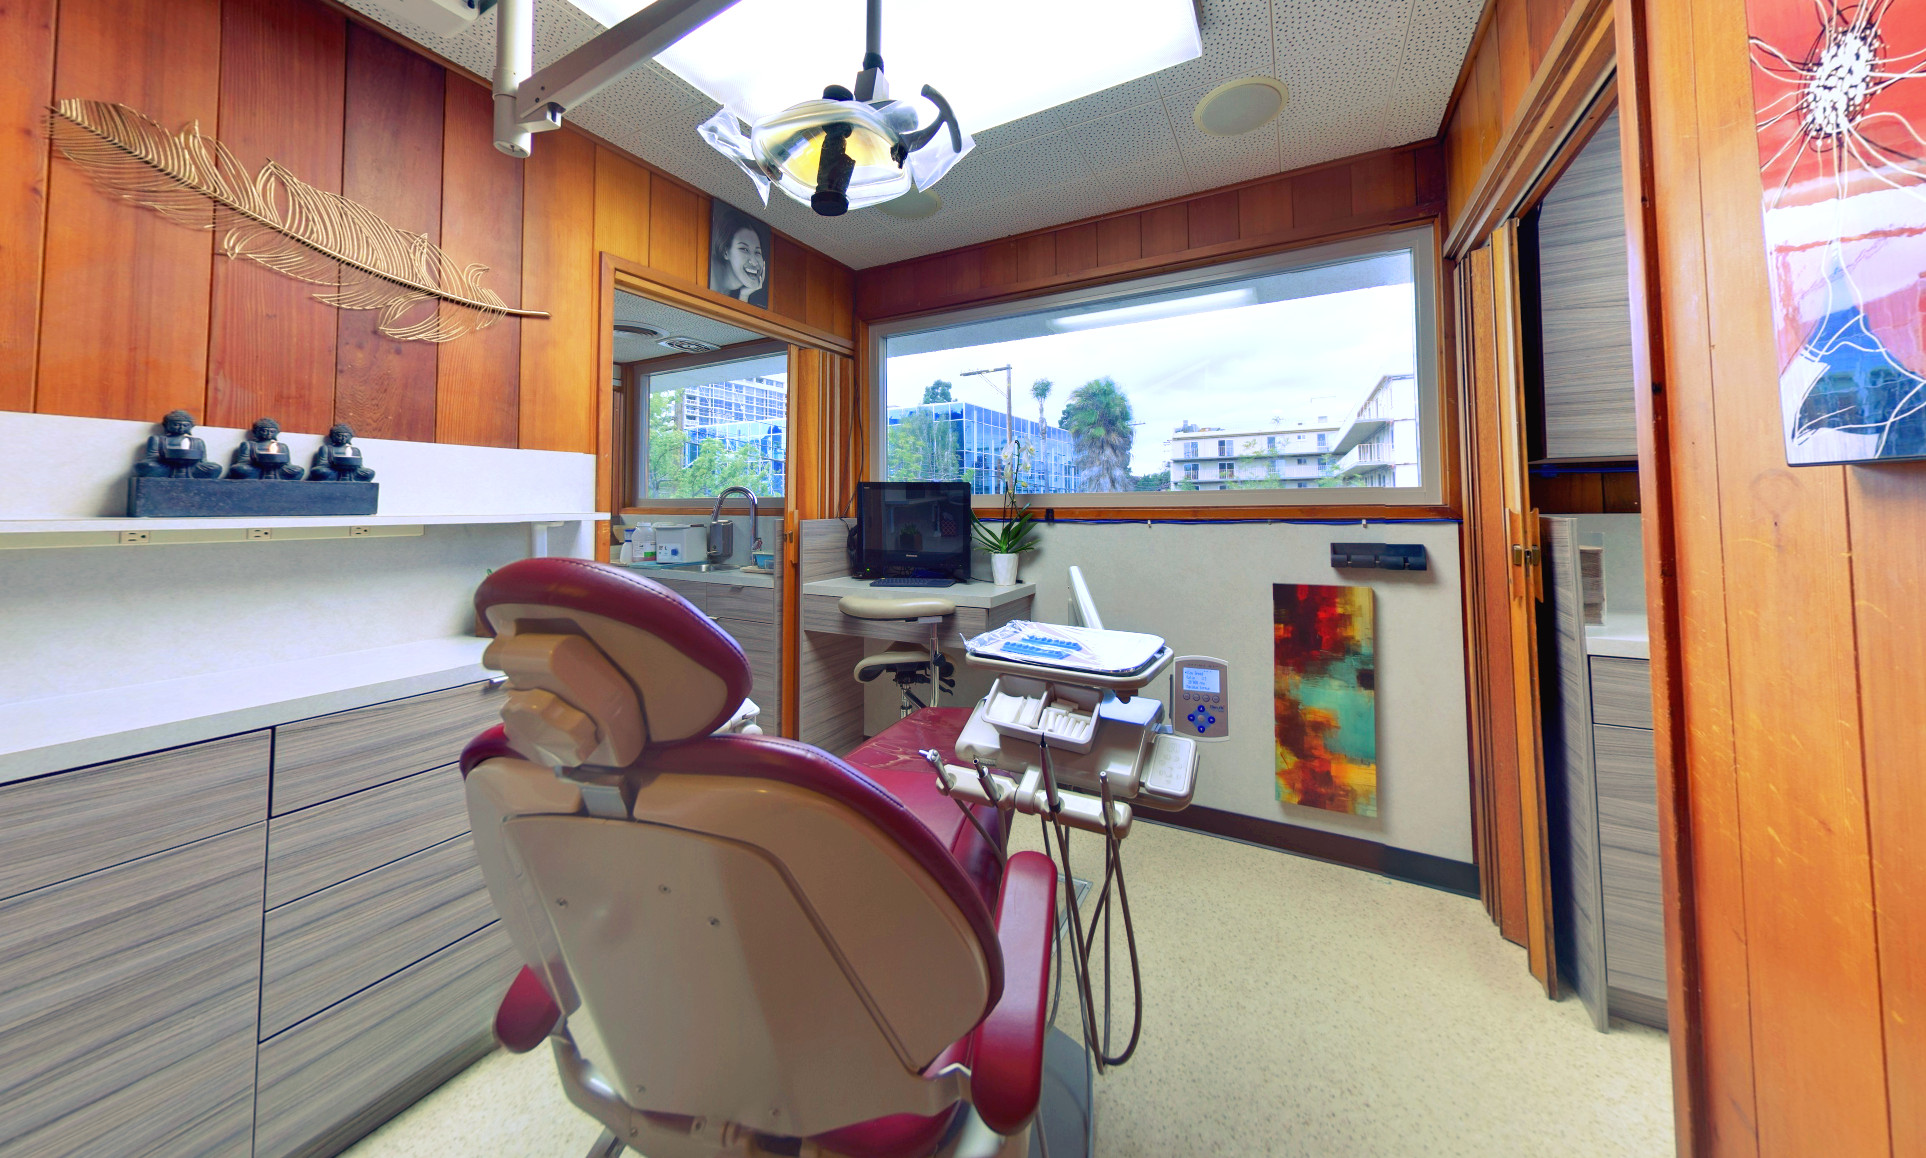 Photo in office showing the dental chair